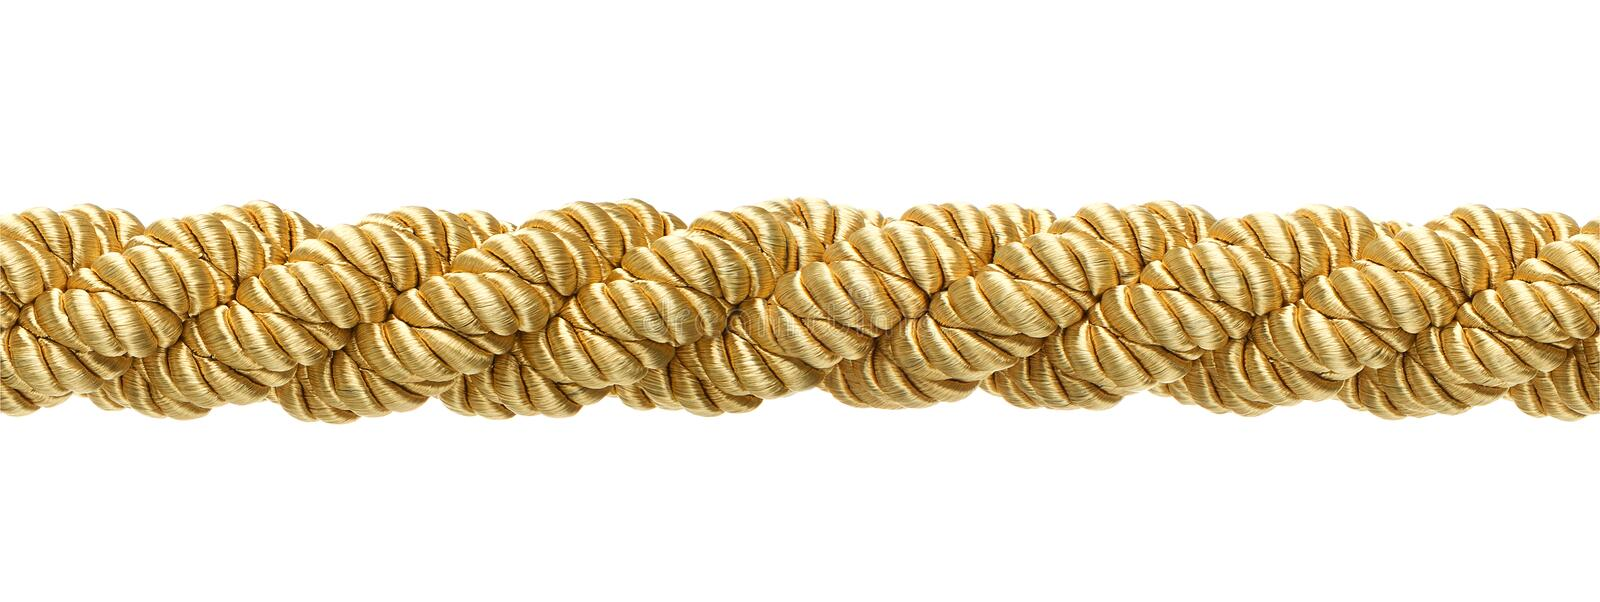 Seamless gold rope. Isolated on white background stock photo